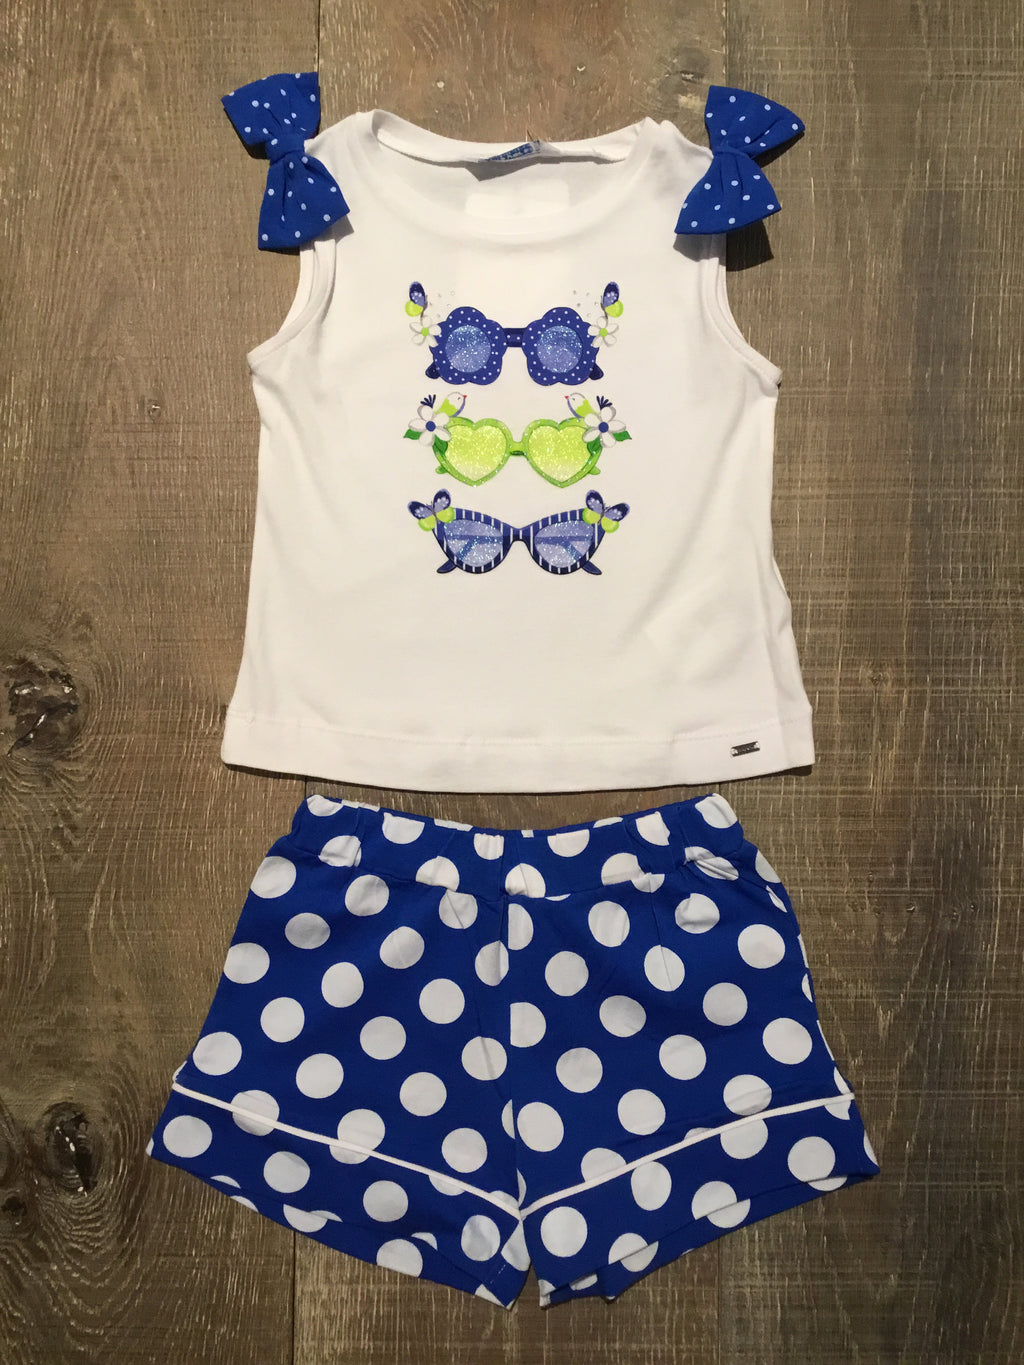 Sunglasses Tank & Polka Dot Shorts Set